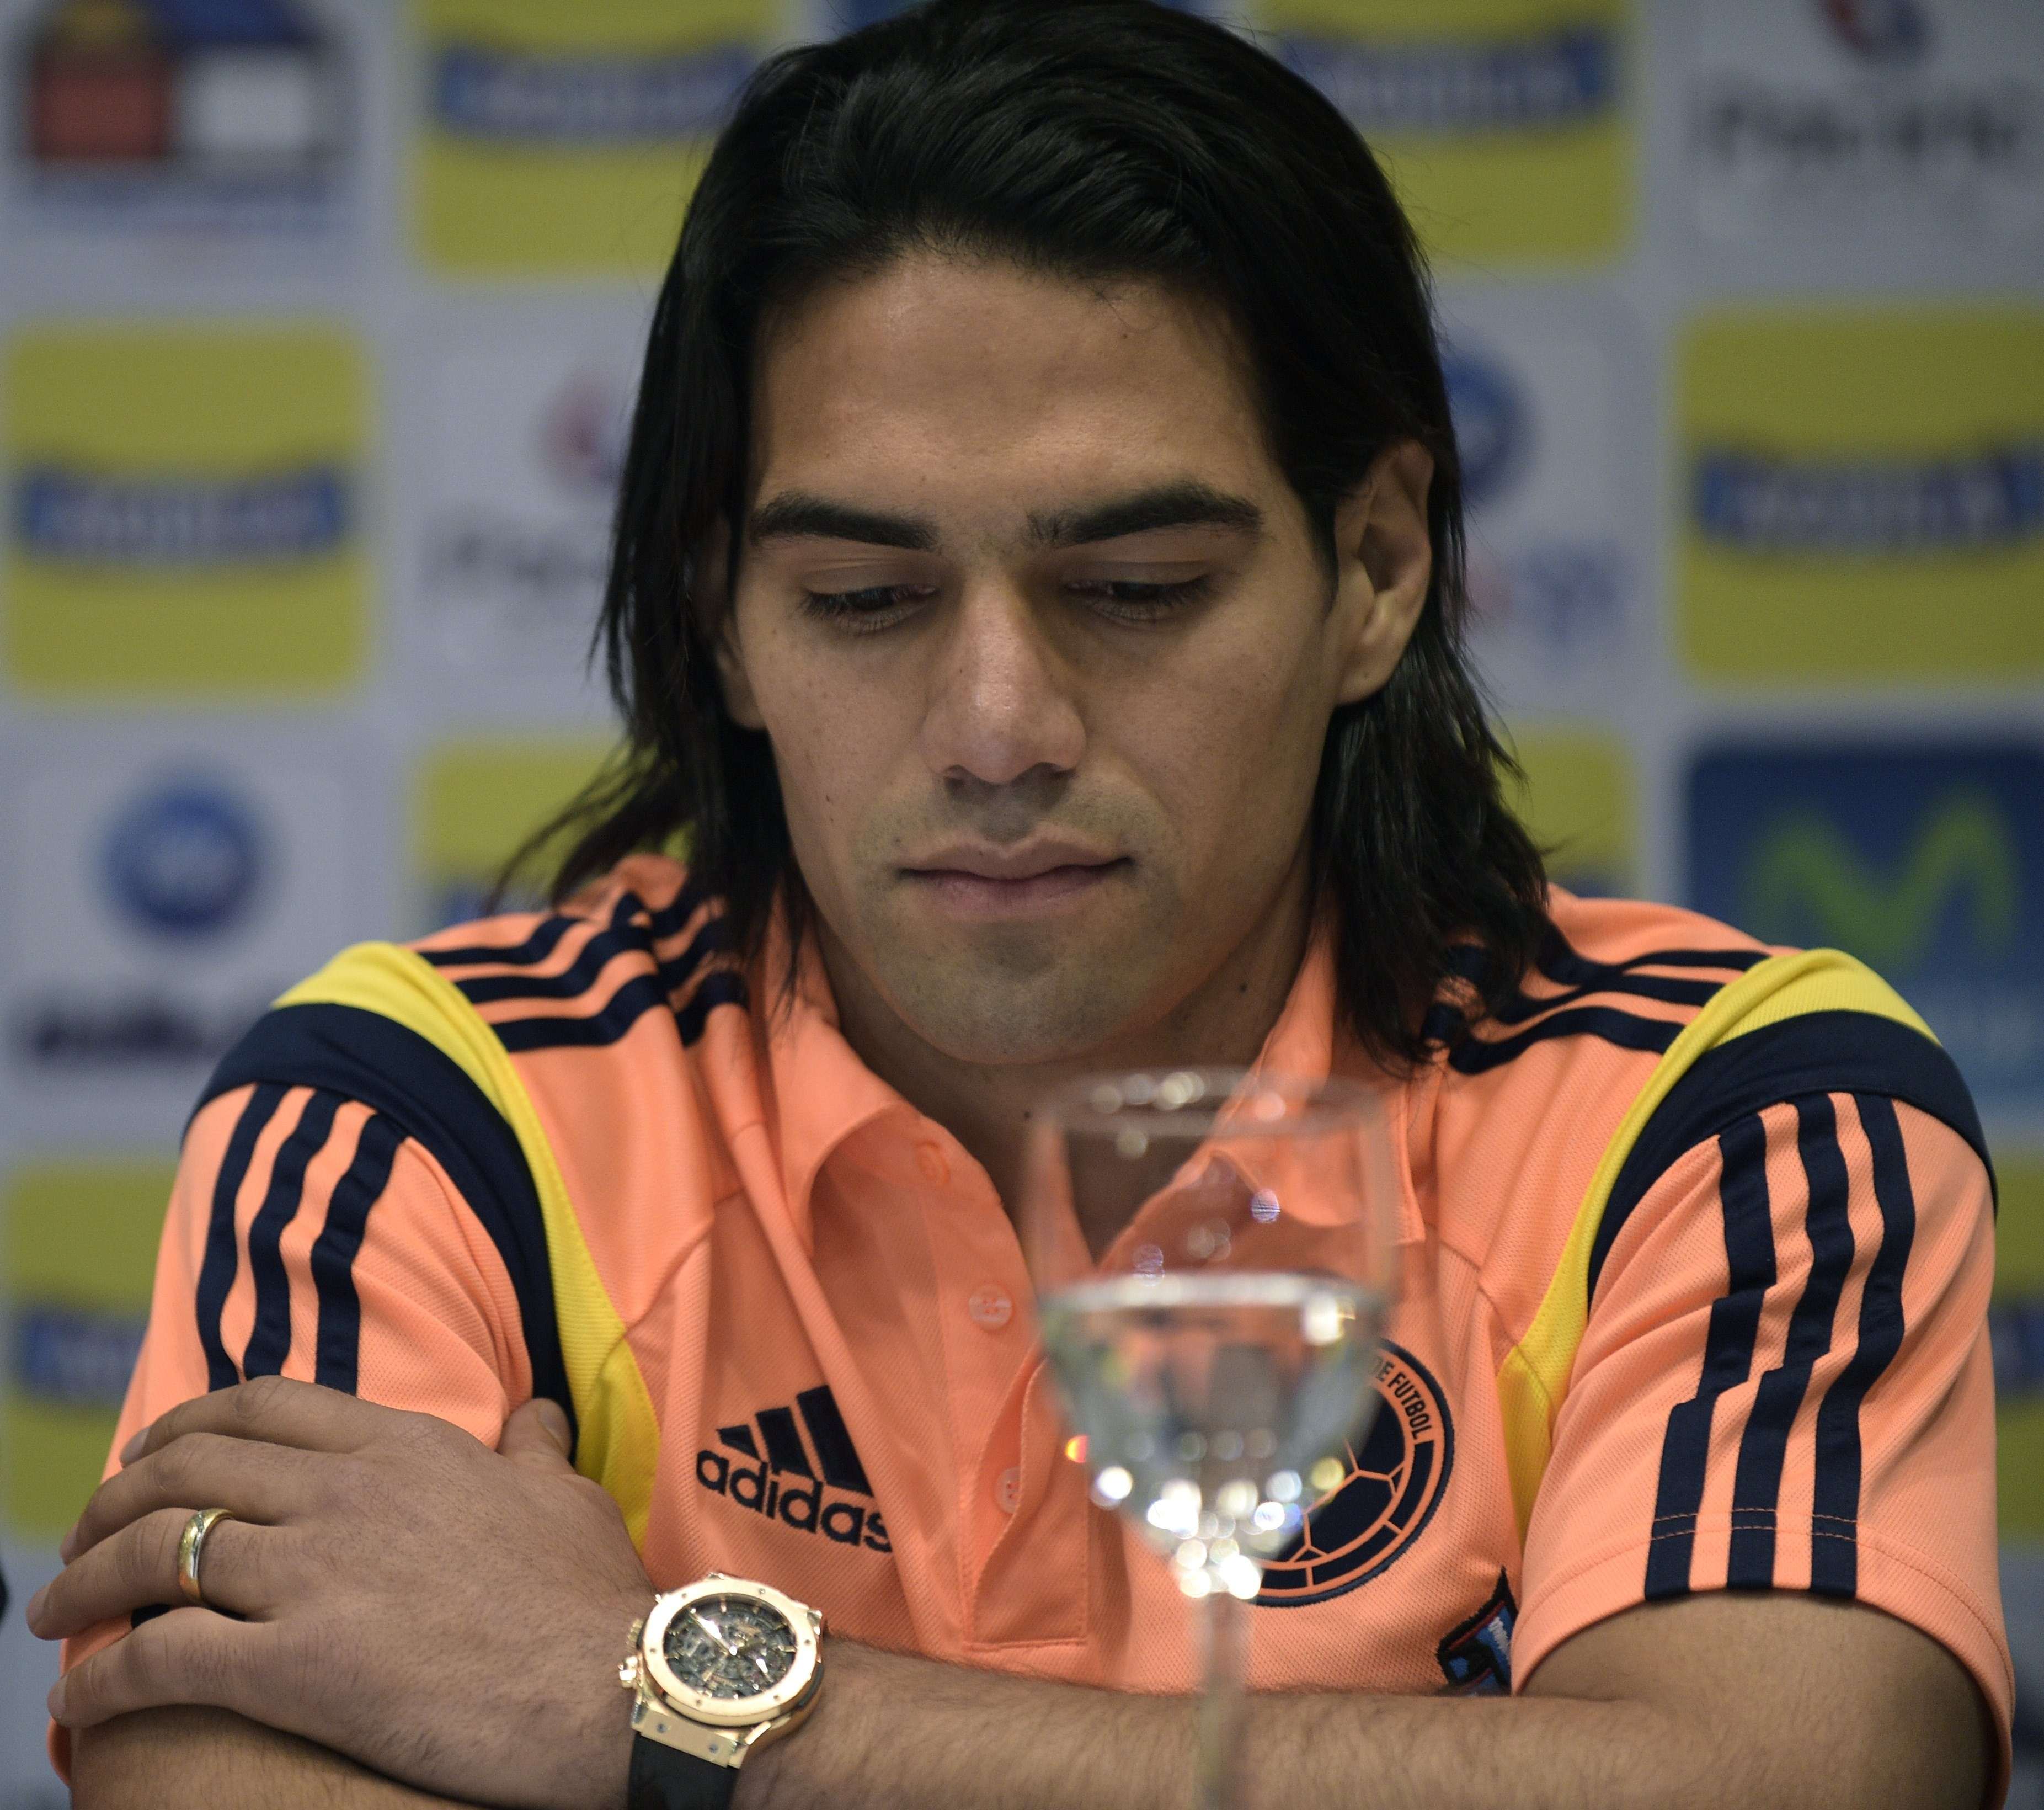 Colombia's national forward Radamel Falcao Garcia gestures during the press conference where coach Jose Pekerman (not in frame) announced that Amaranto Perea, Luis Muriel and himself will be out of the list of 23 players for the FIFA World Cup, in Cardales, on June 2, 2014.   AFP PHOTO / DANIEL GARCIA        (Photo credit should read DANIEL GARCIA/AFP/Getty Images)